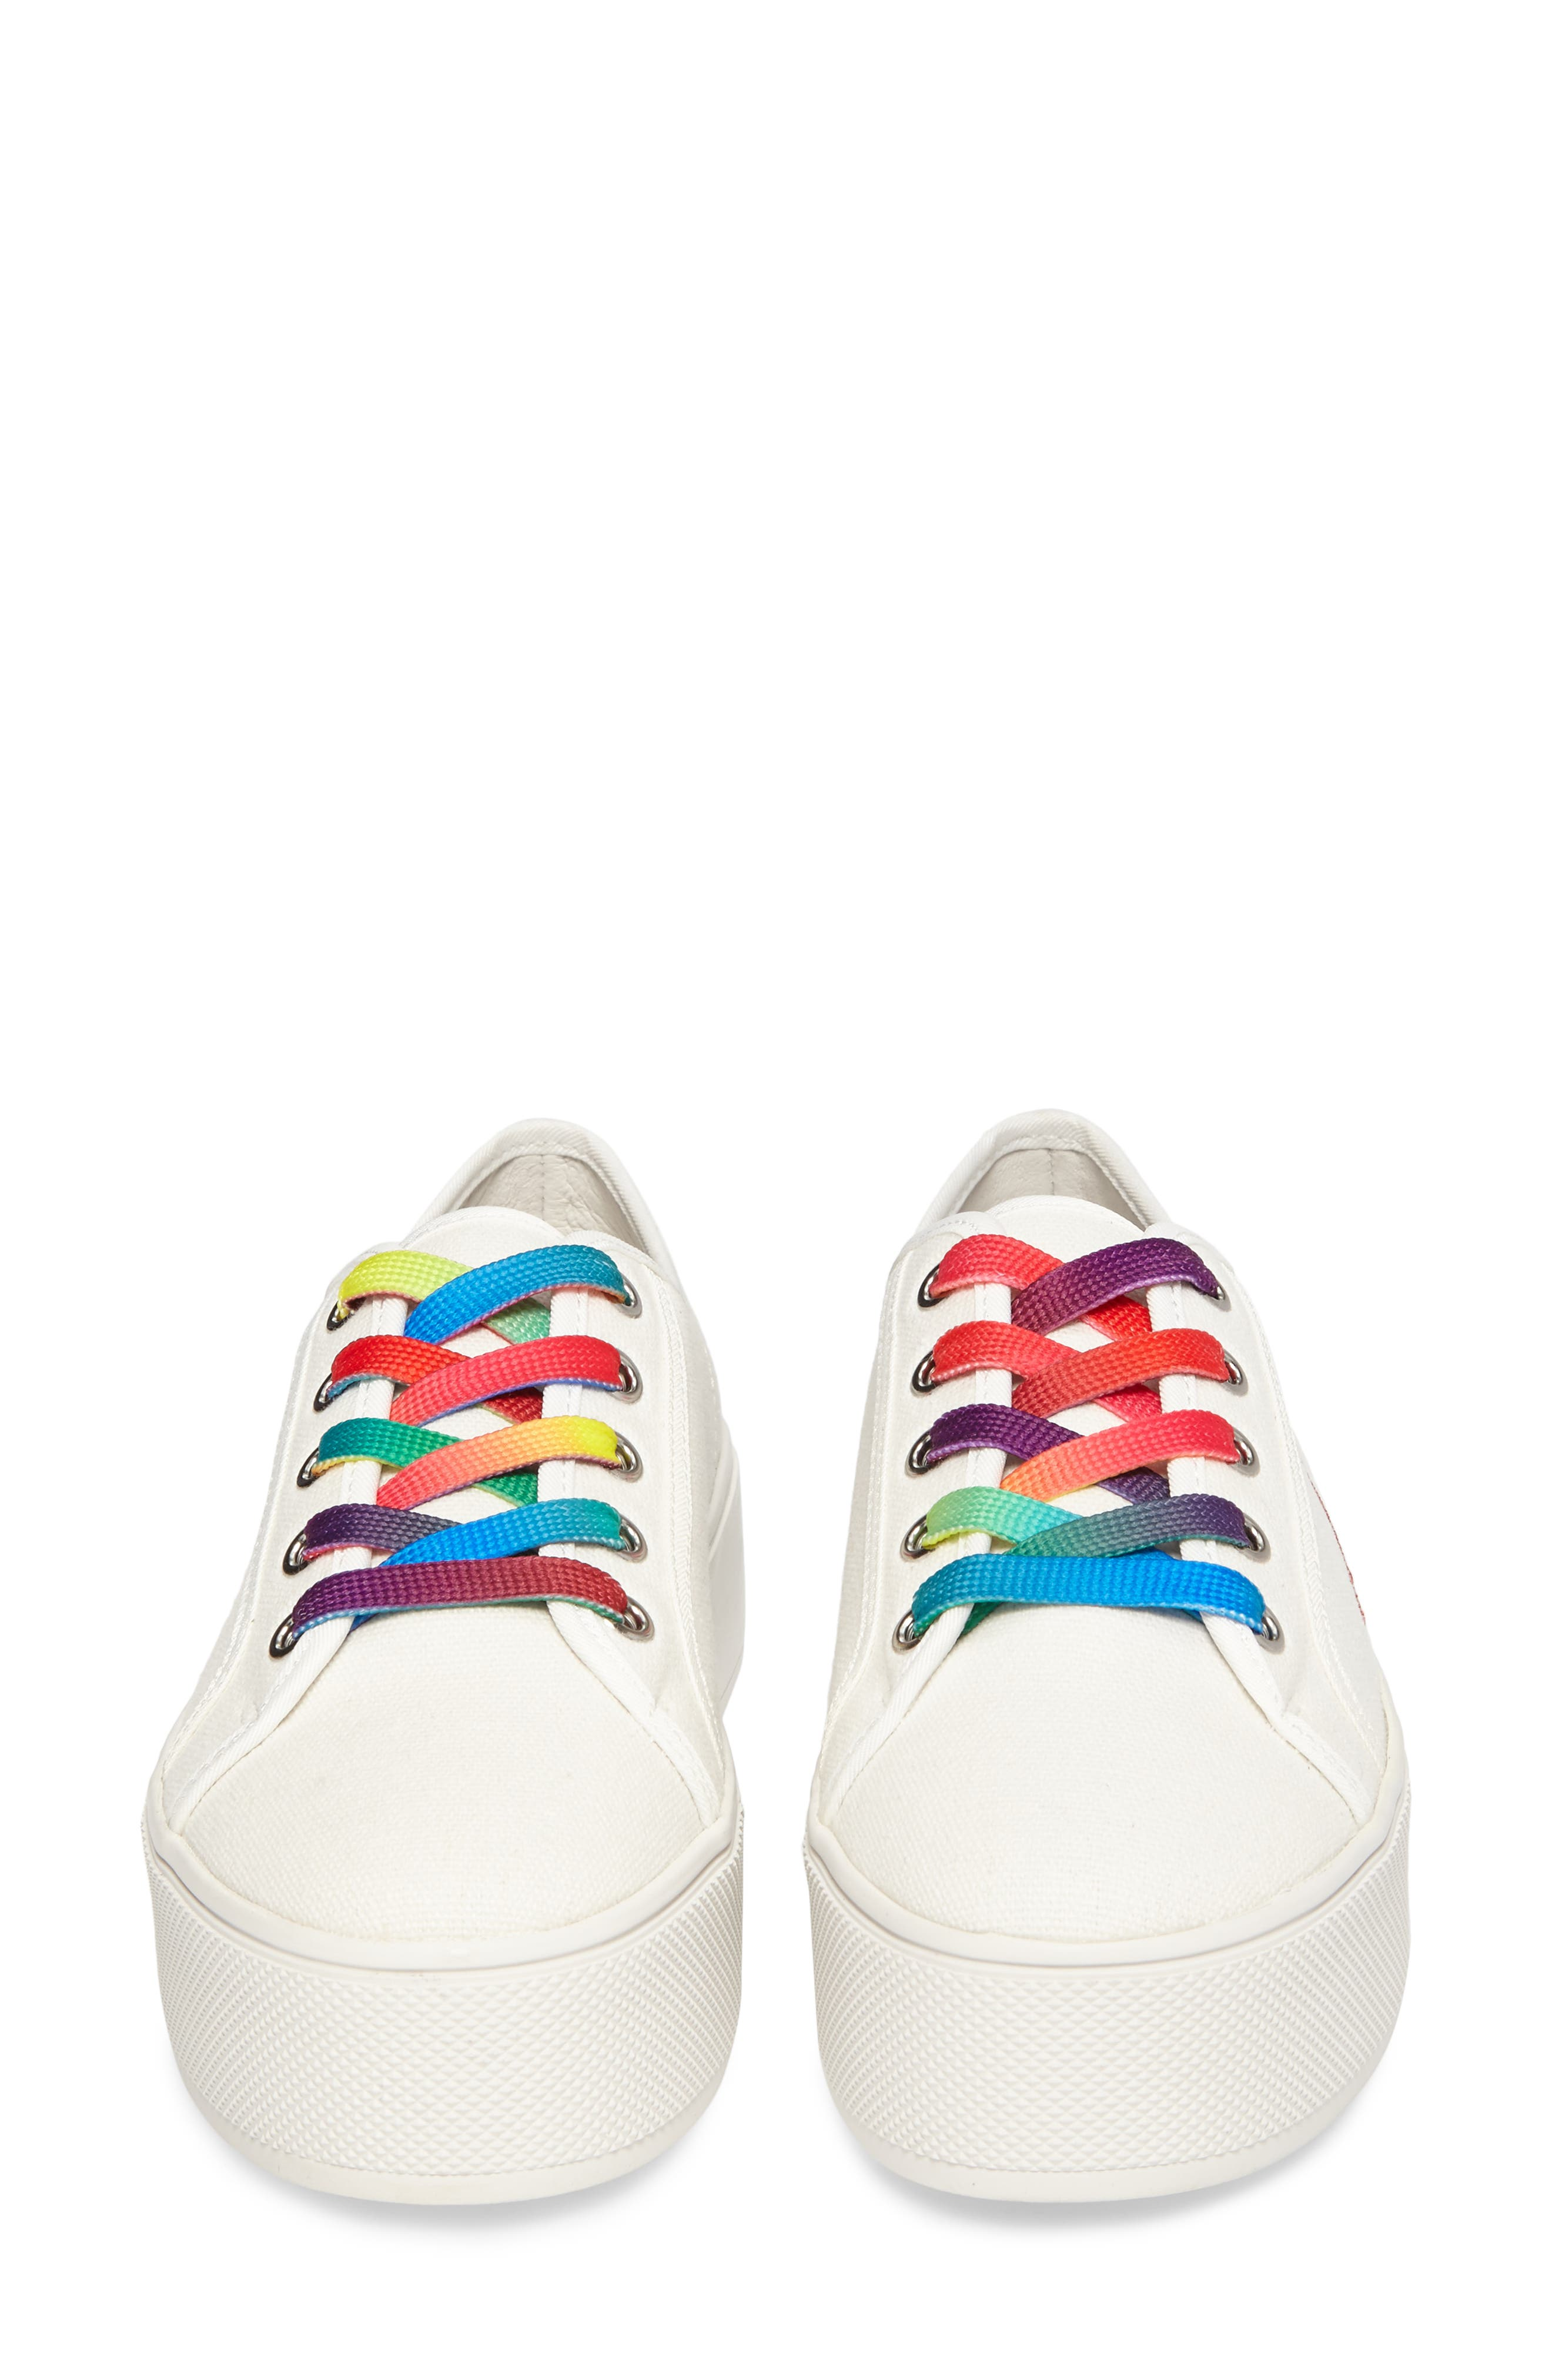 Fink Platform Sneaker,                             Alternate thumbnail 8, color,